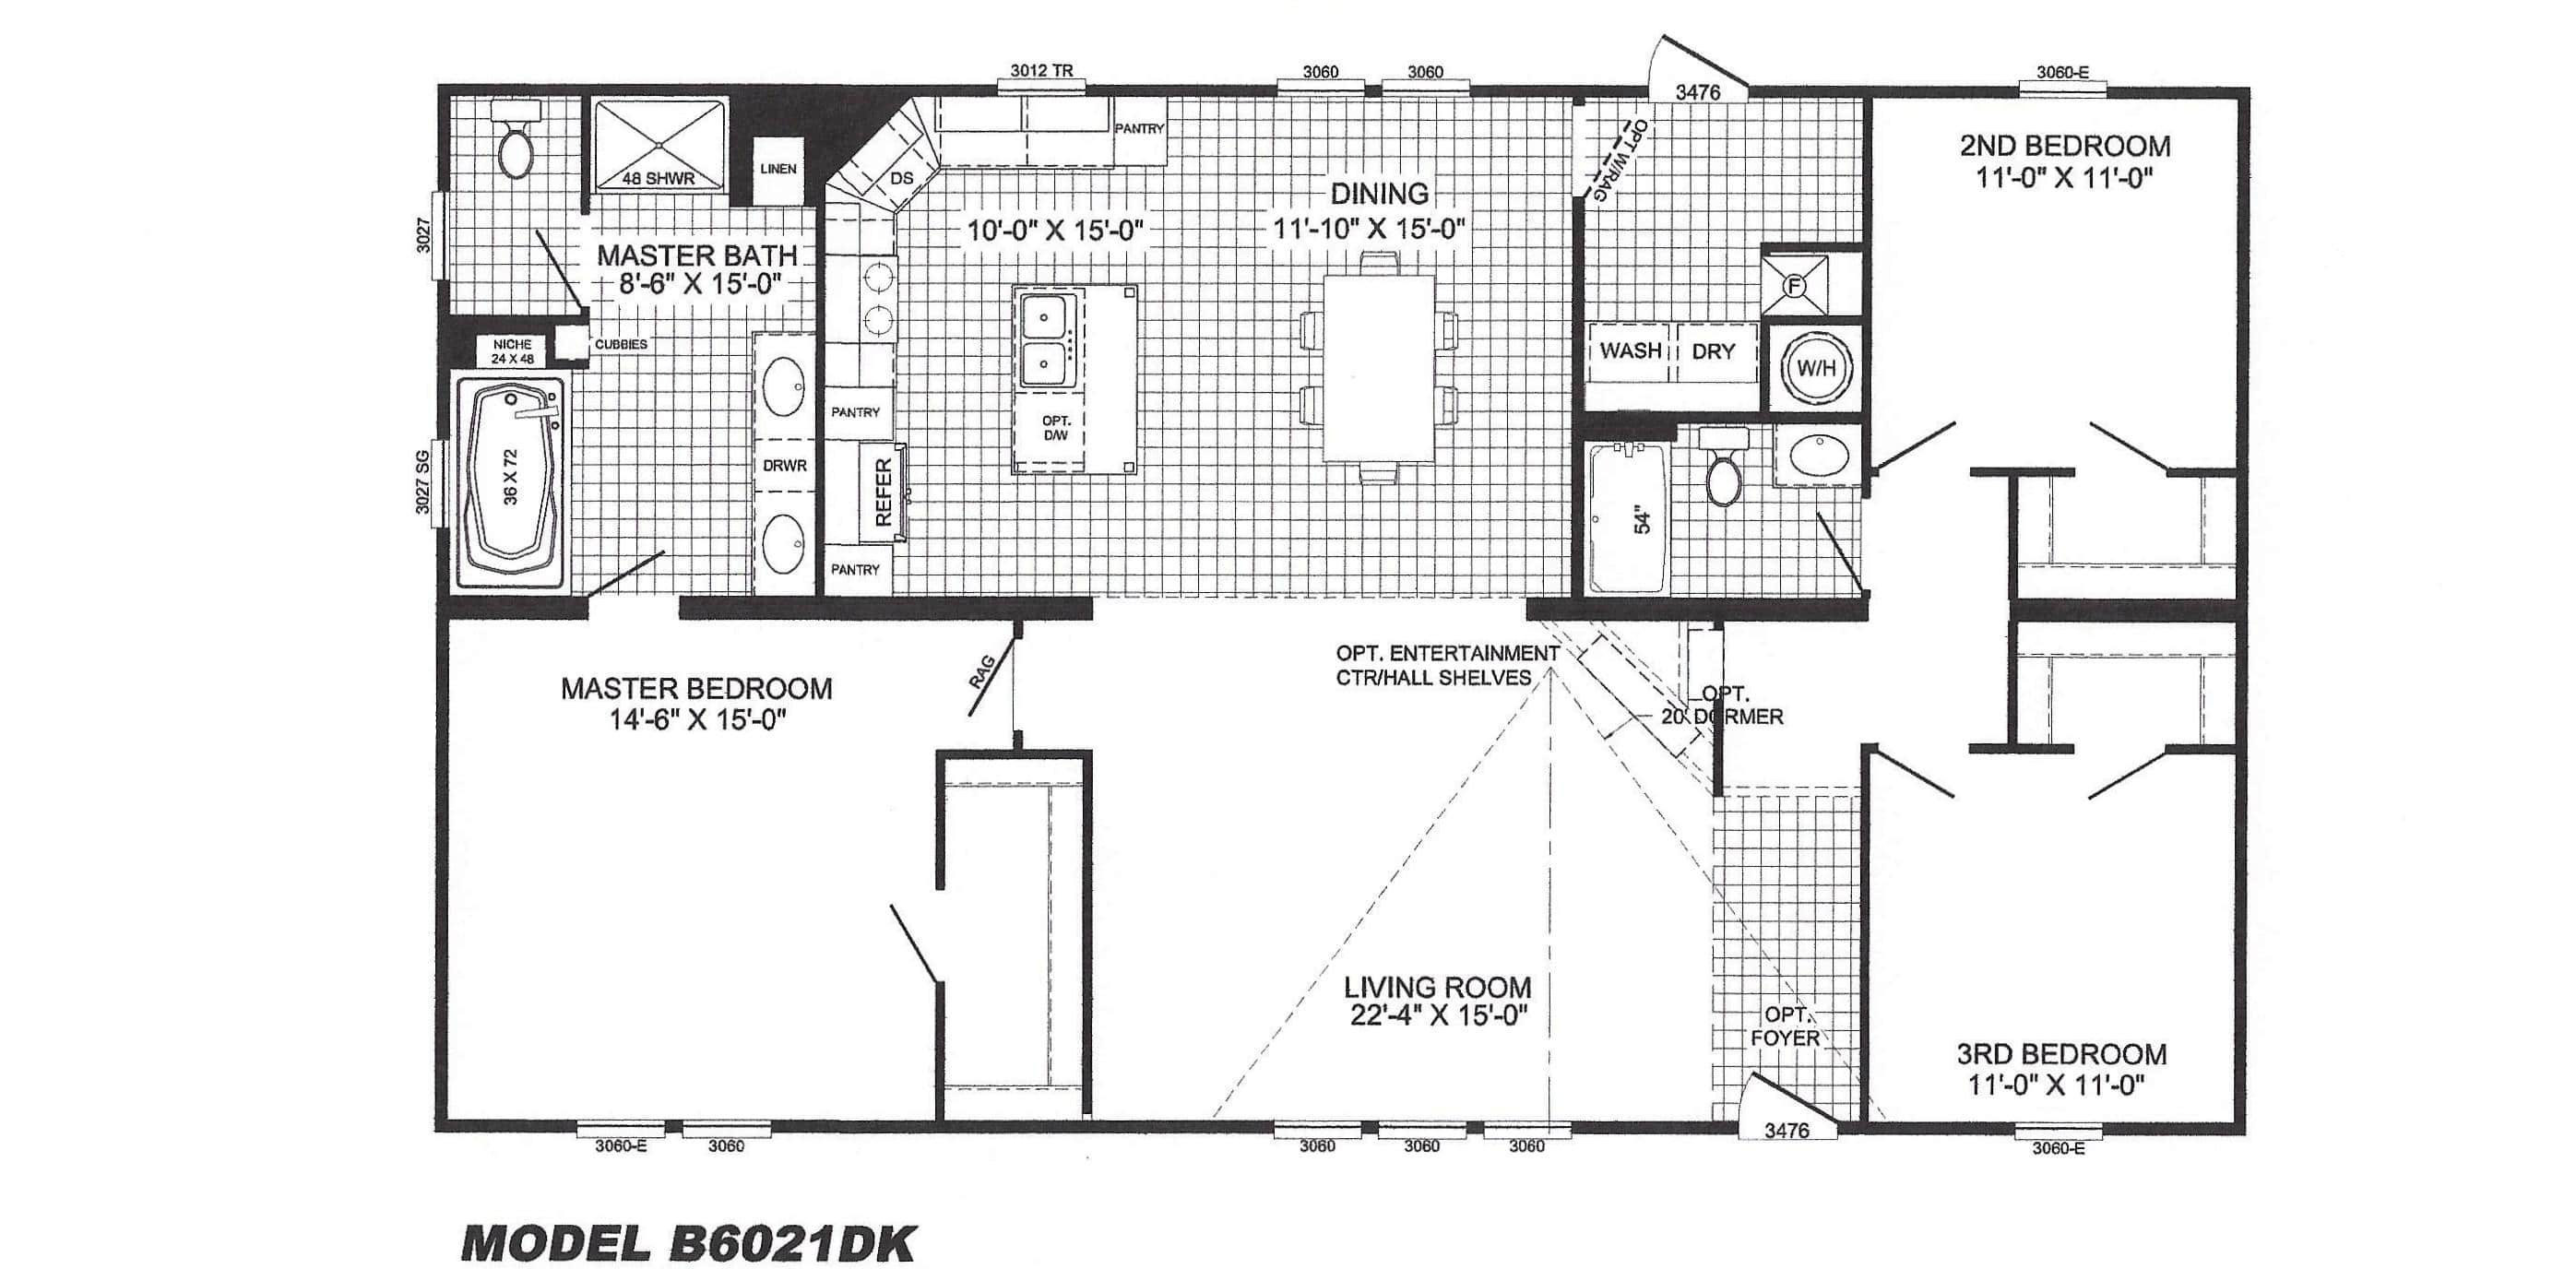 most popular manufactured home floor plans modern home most popular floor plans 2013 ask home design